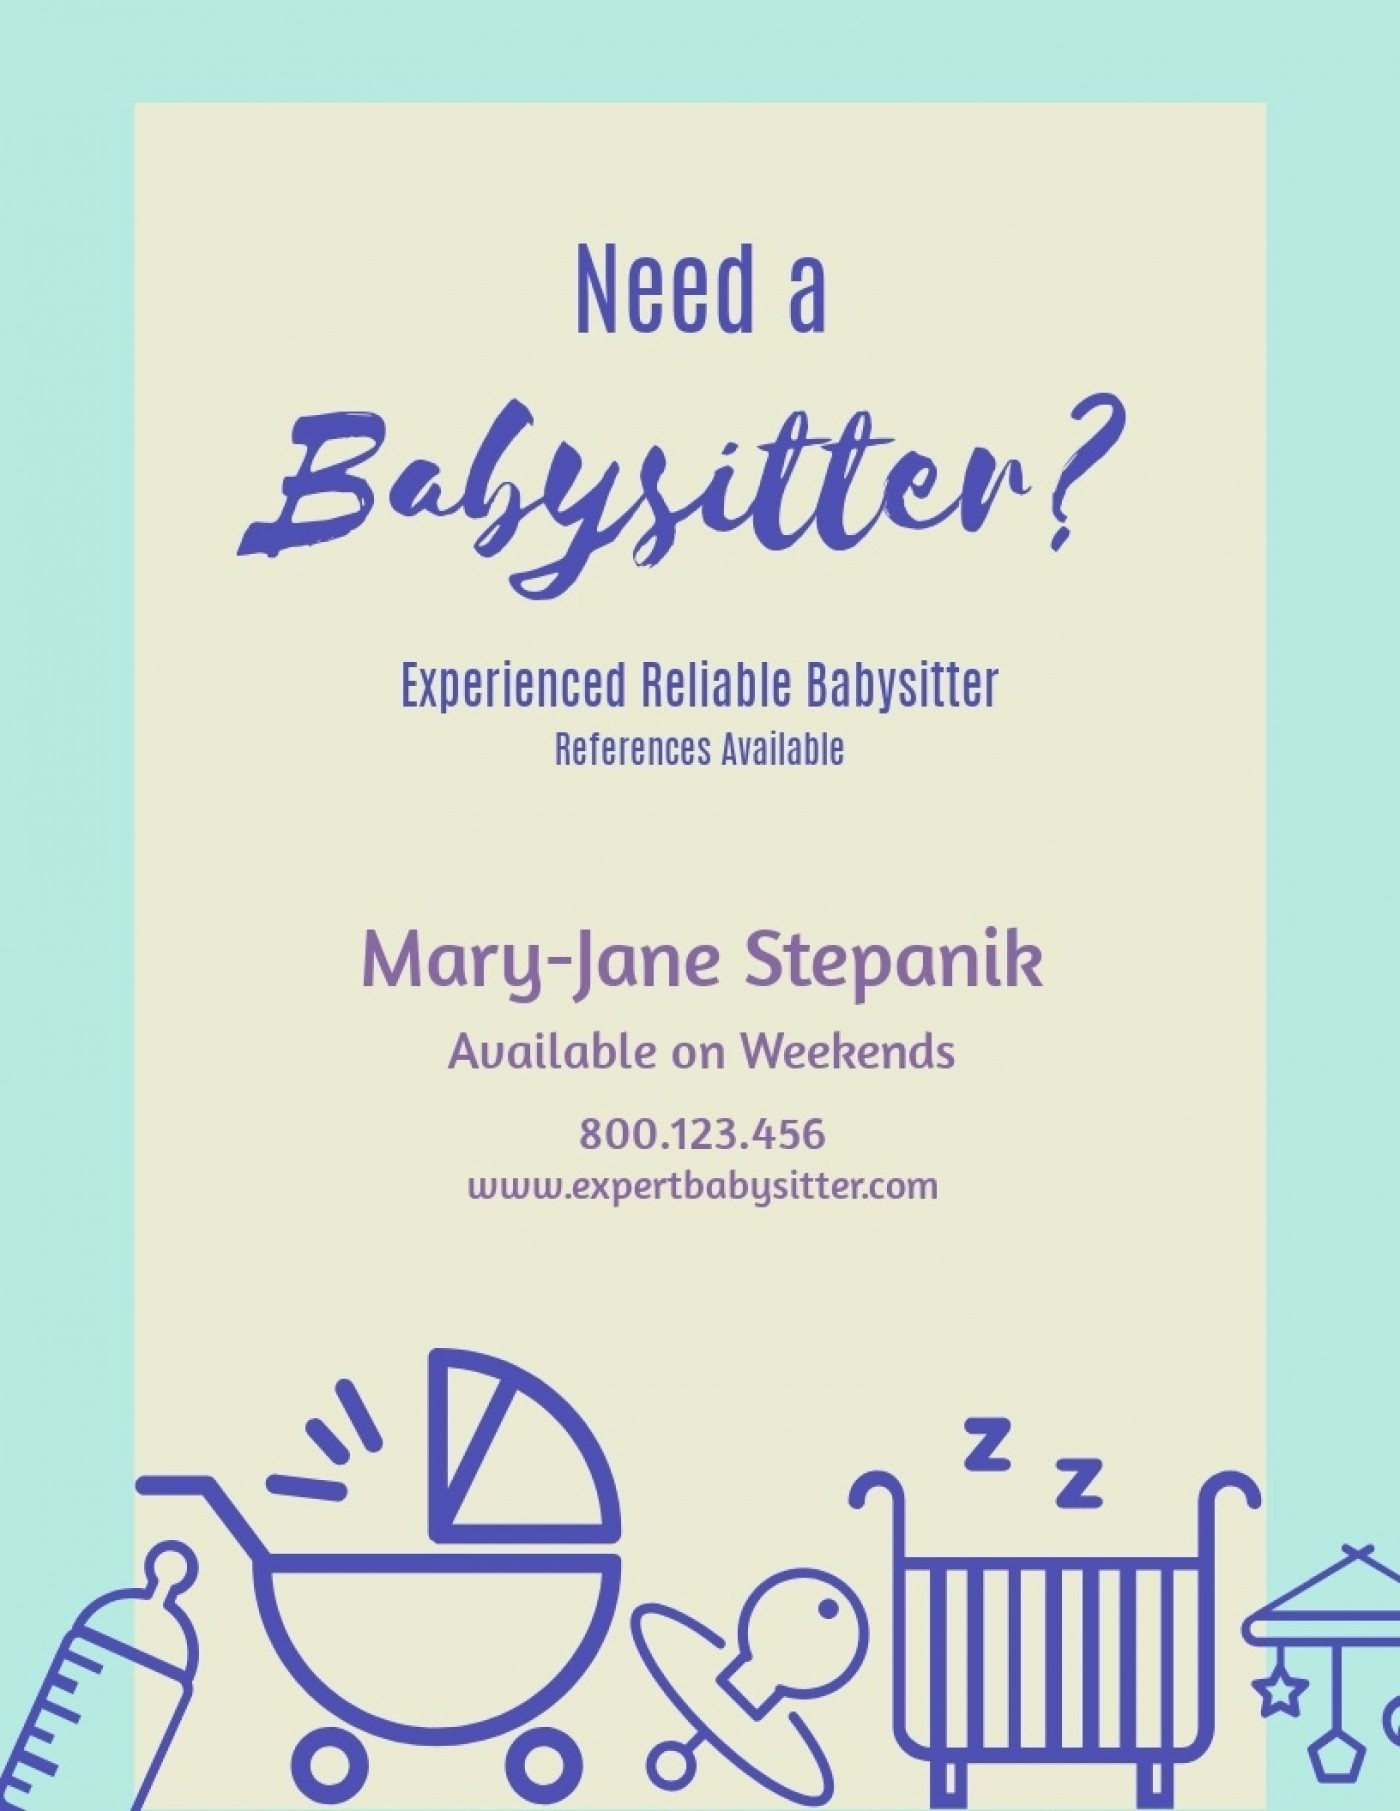 Need Free Babysitting Flyer Template  Online1400